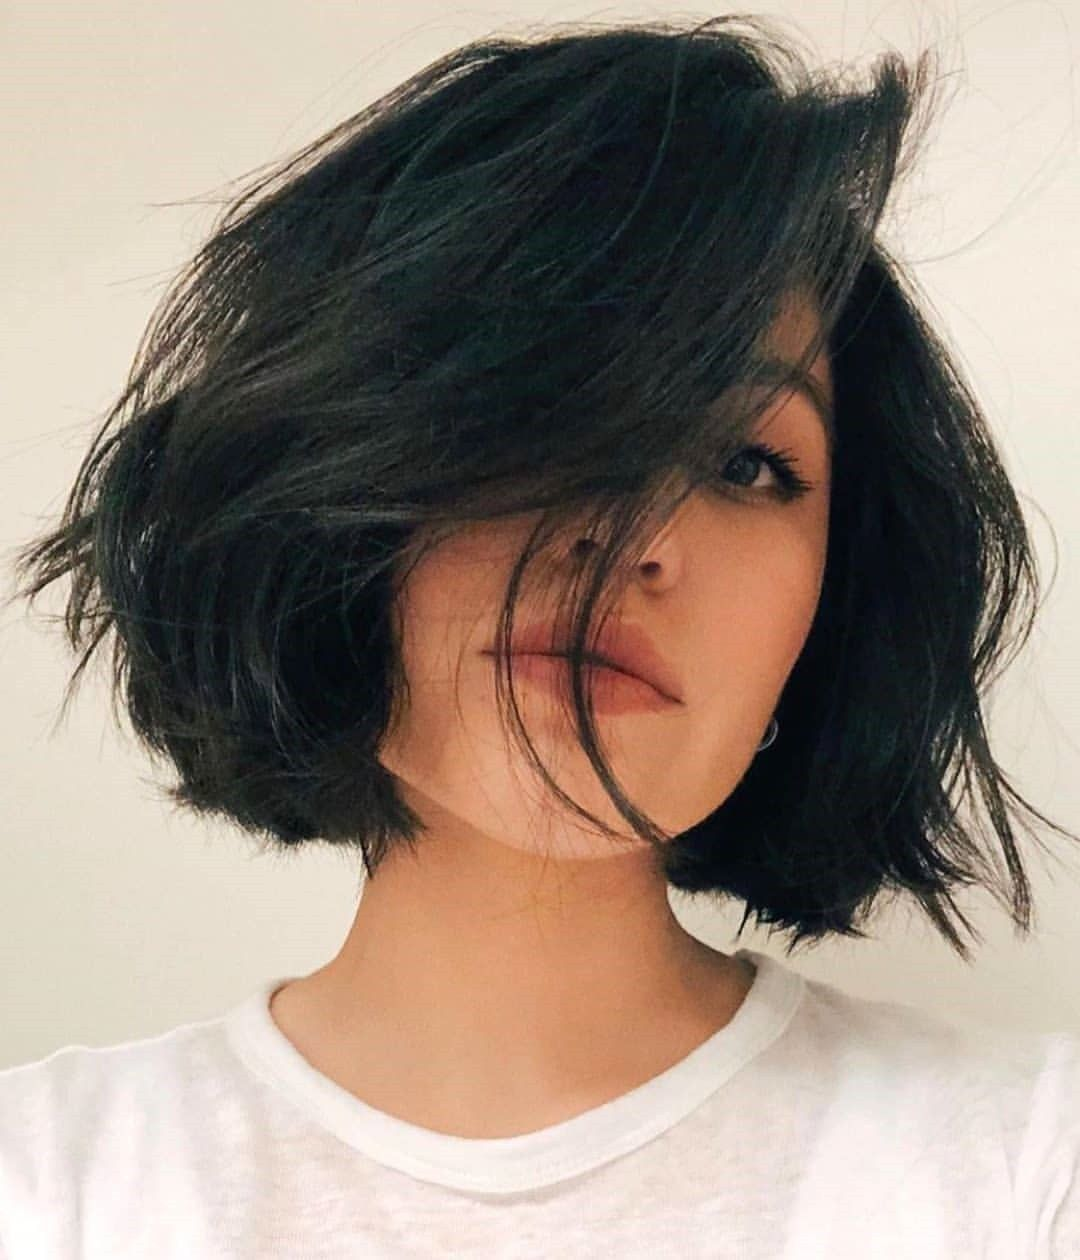 Edgy Hair 2019 90 Most Edgy Short Hairstyles For Women 2019 Edgy Hair Hair Styles Short Hair Styles